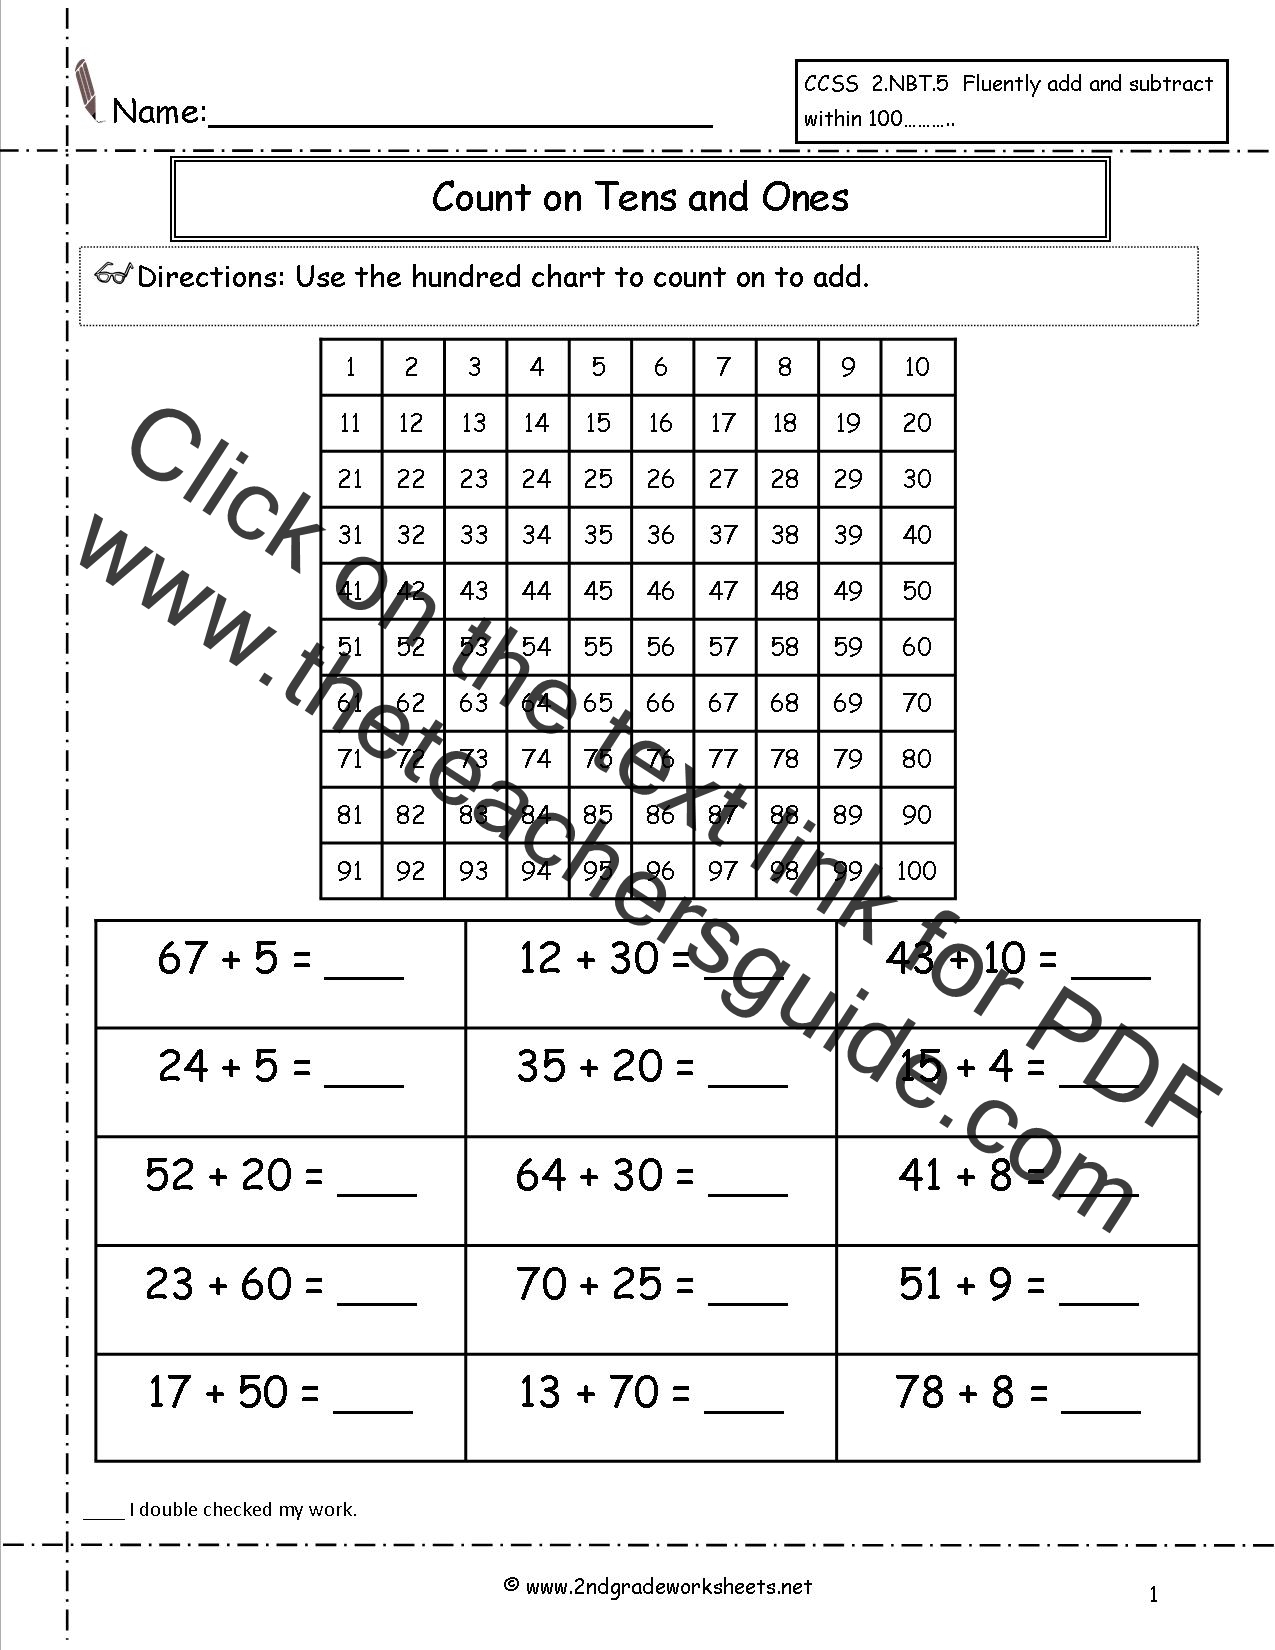 Two Digit Addition Worksheets – Fun Subtraction with Regrouping Worksheets